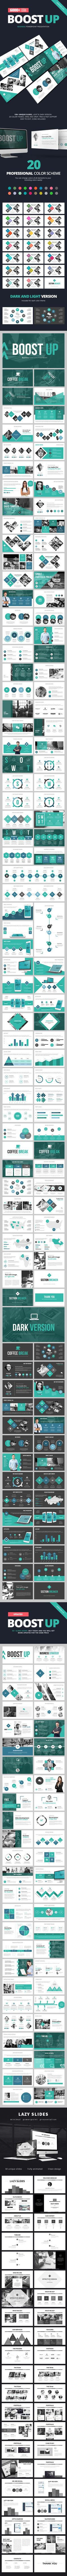 The Powerpoint Template Bundle